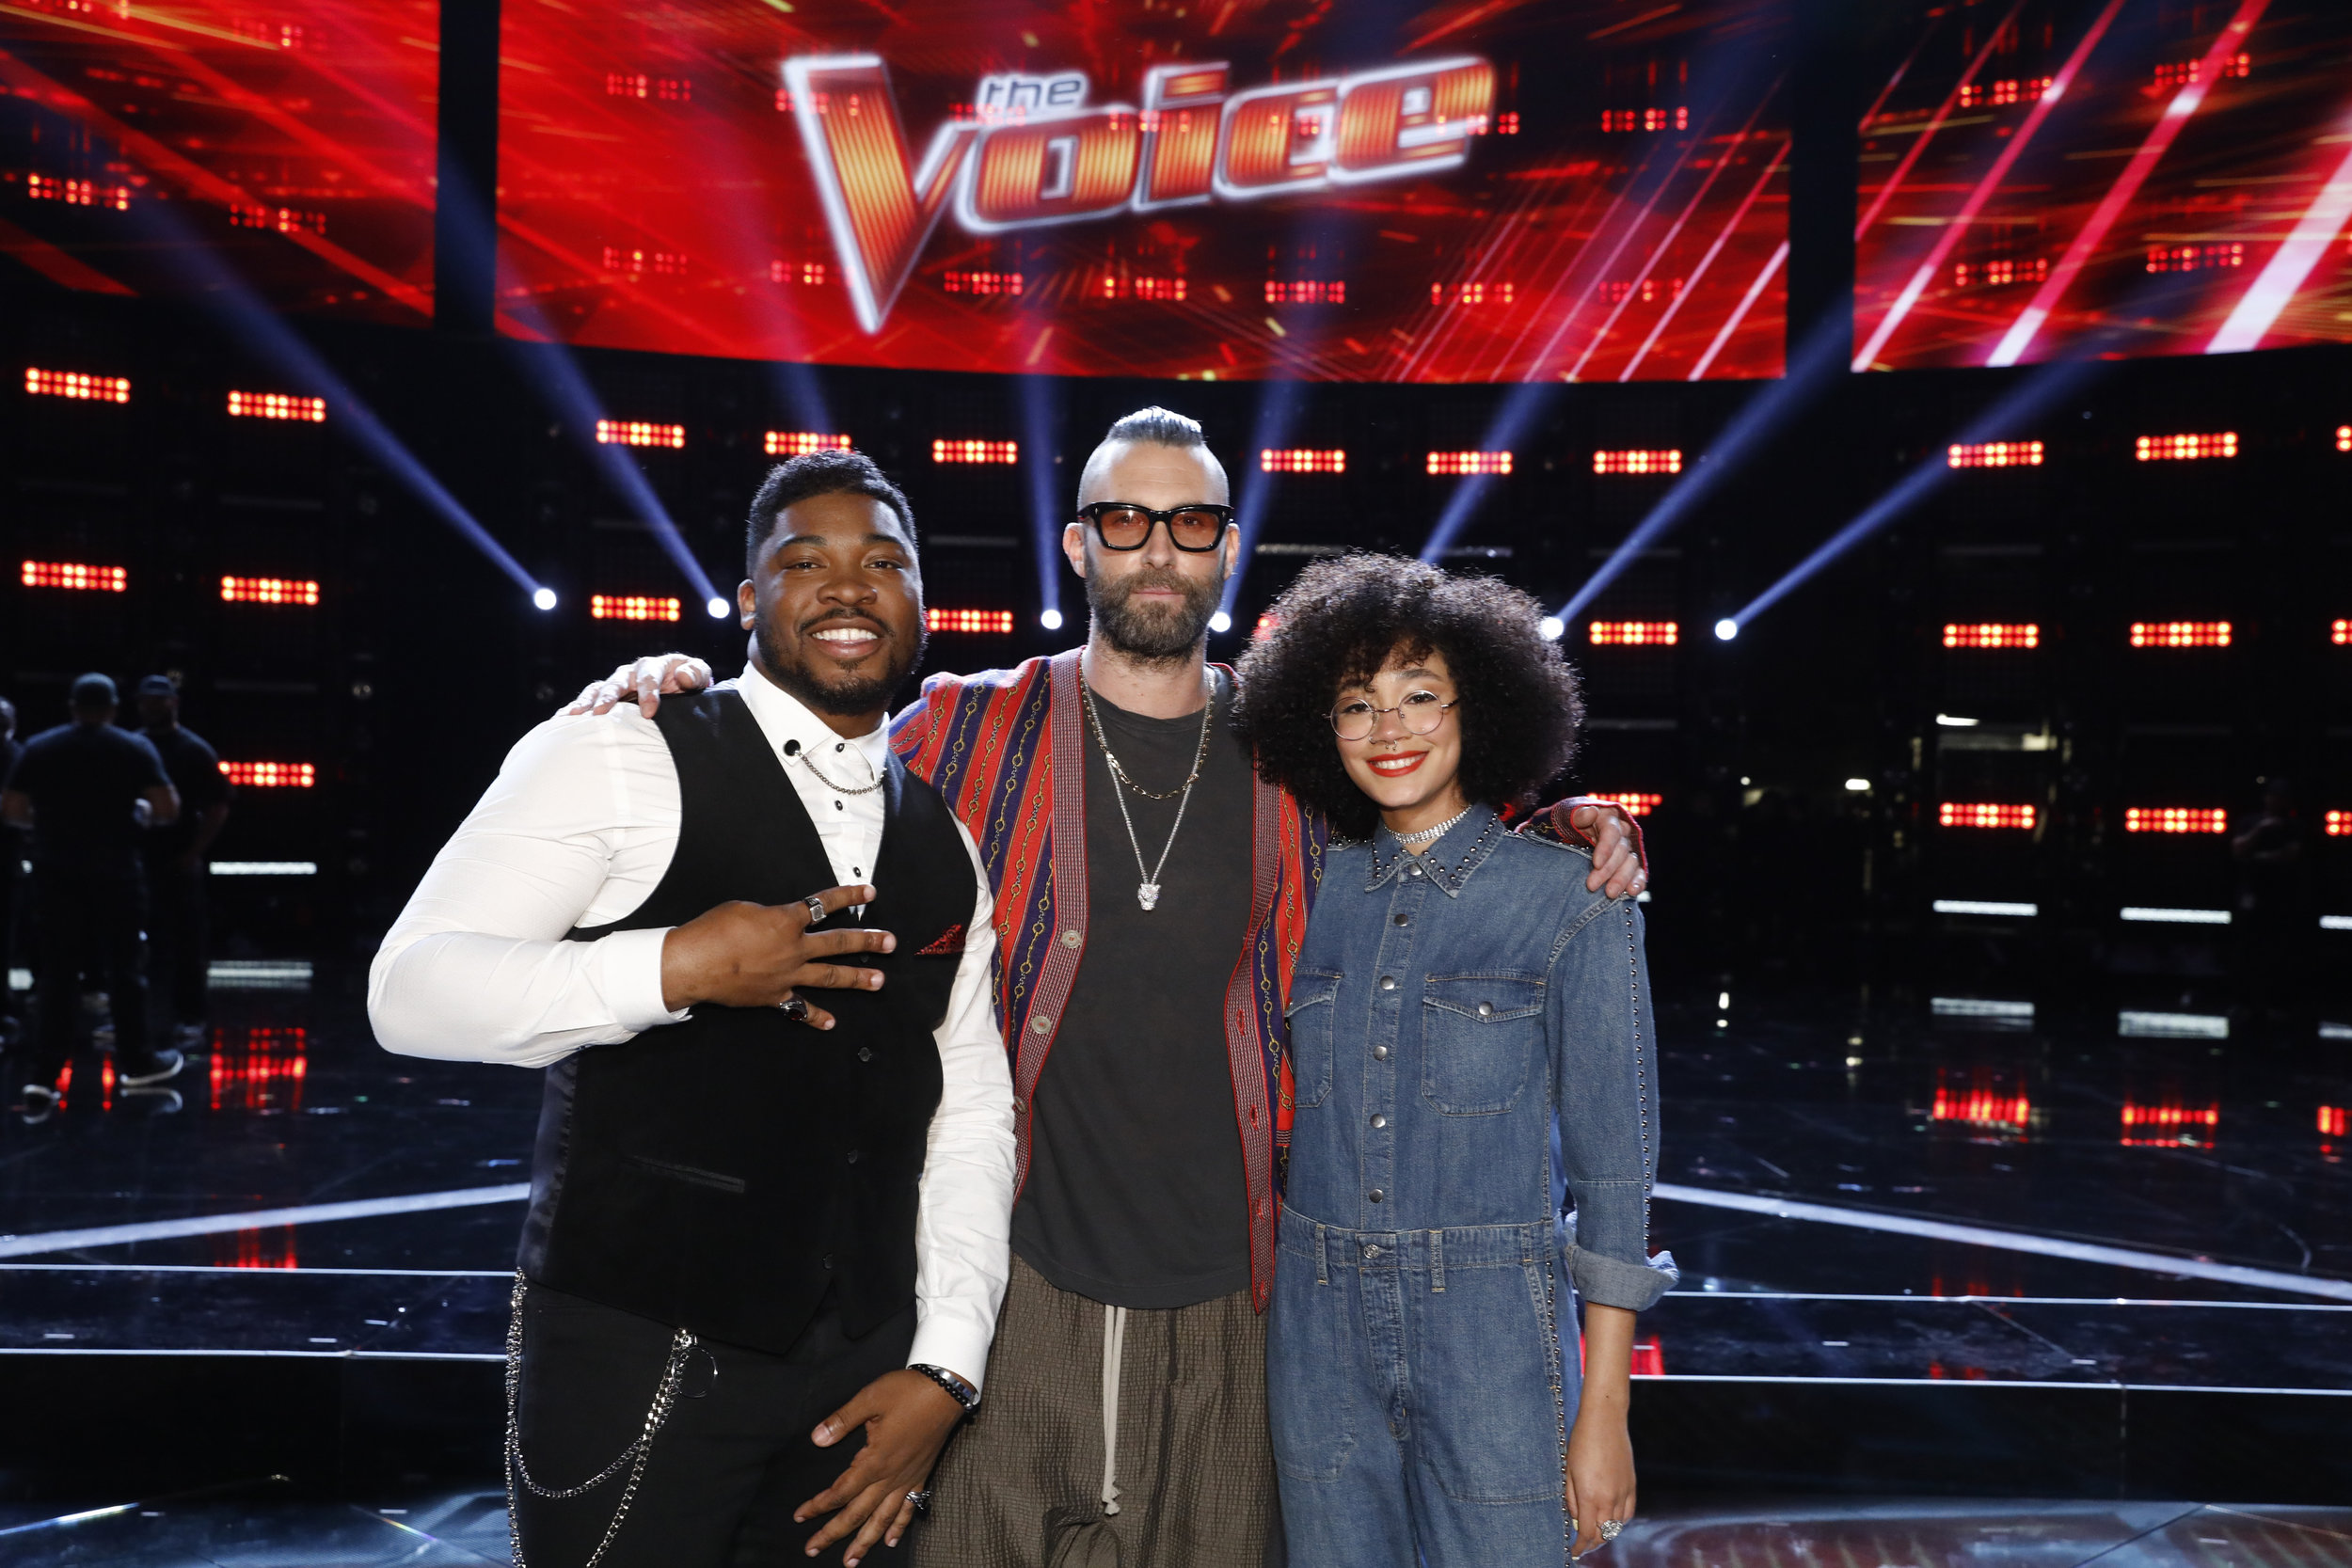 Levine (center) with (from left) LB Crew and Mari